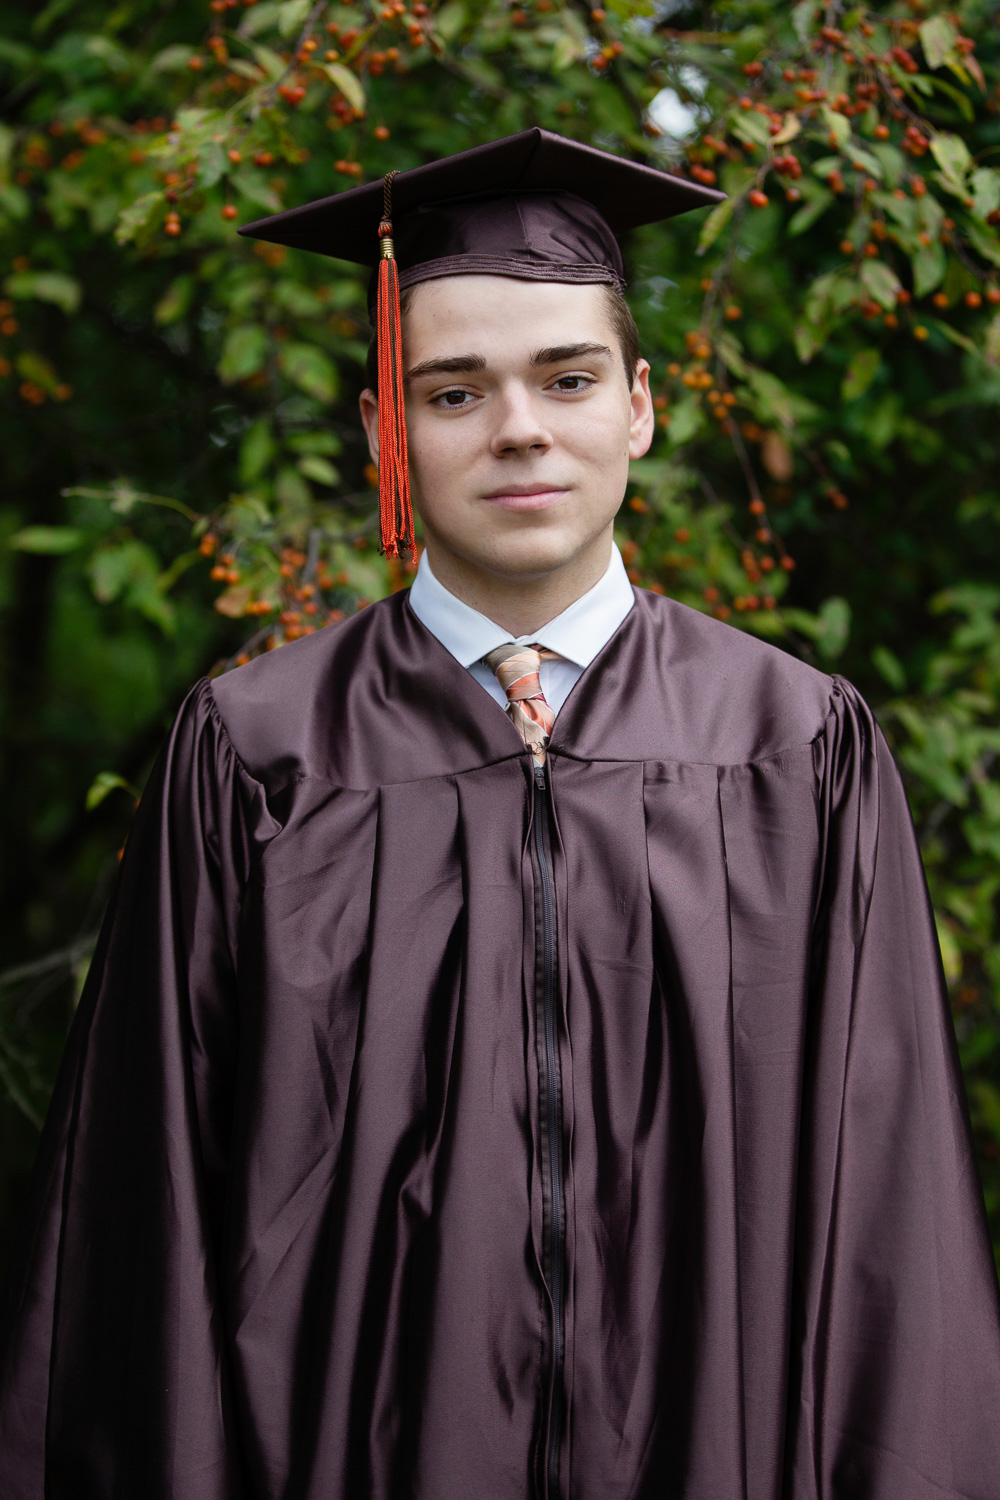 silverbox creative graduation photo